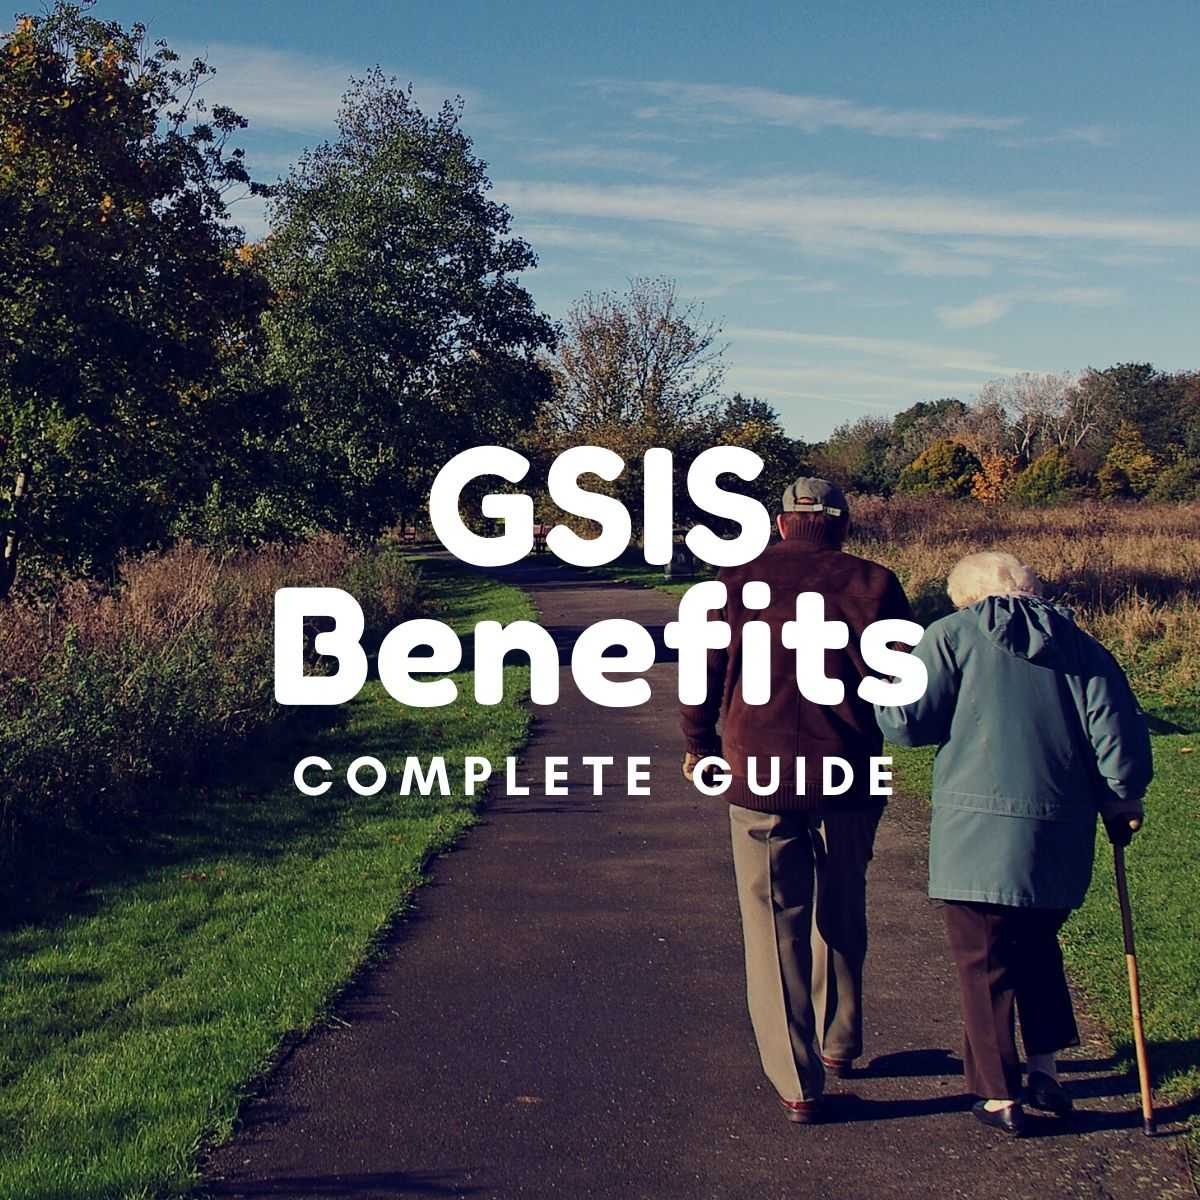 Gsis Survivorship Christmas Bonus 2020 Complete List of GSIS Benefits in the Philippines in 2020